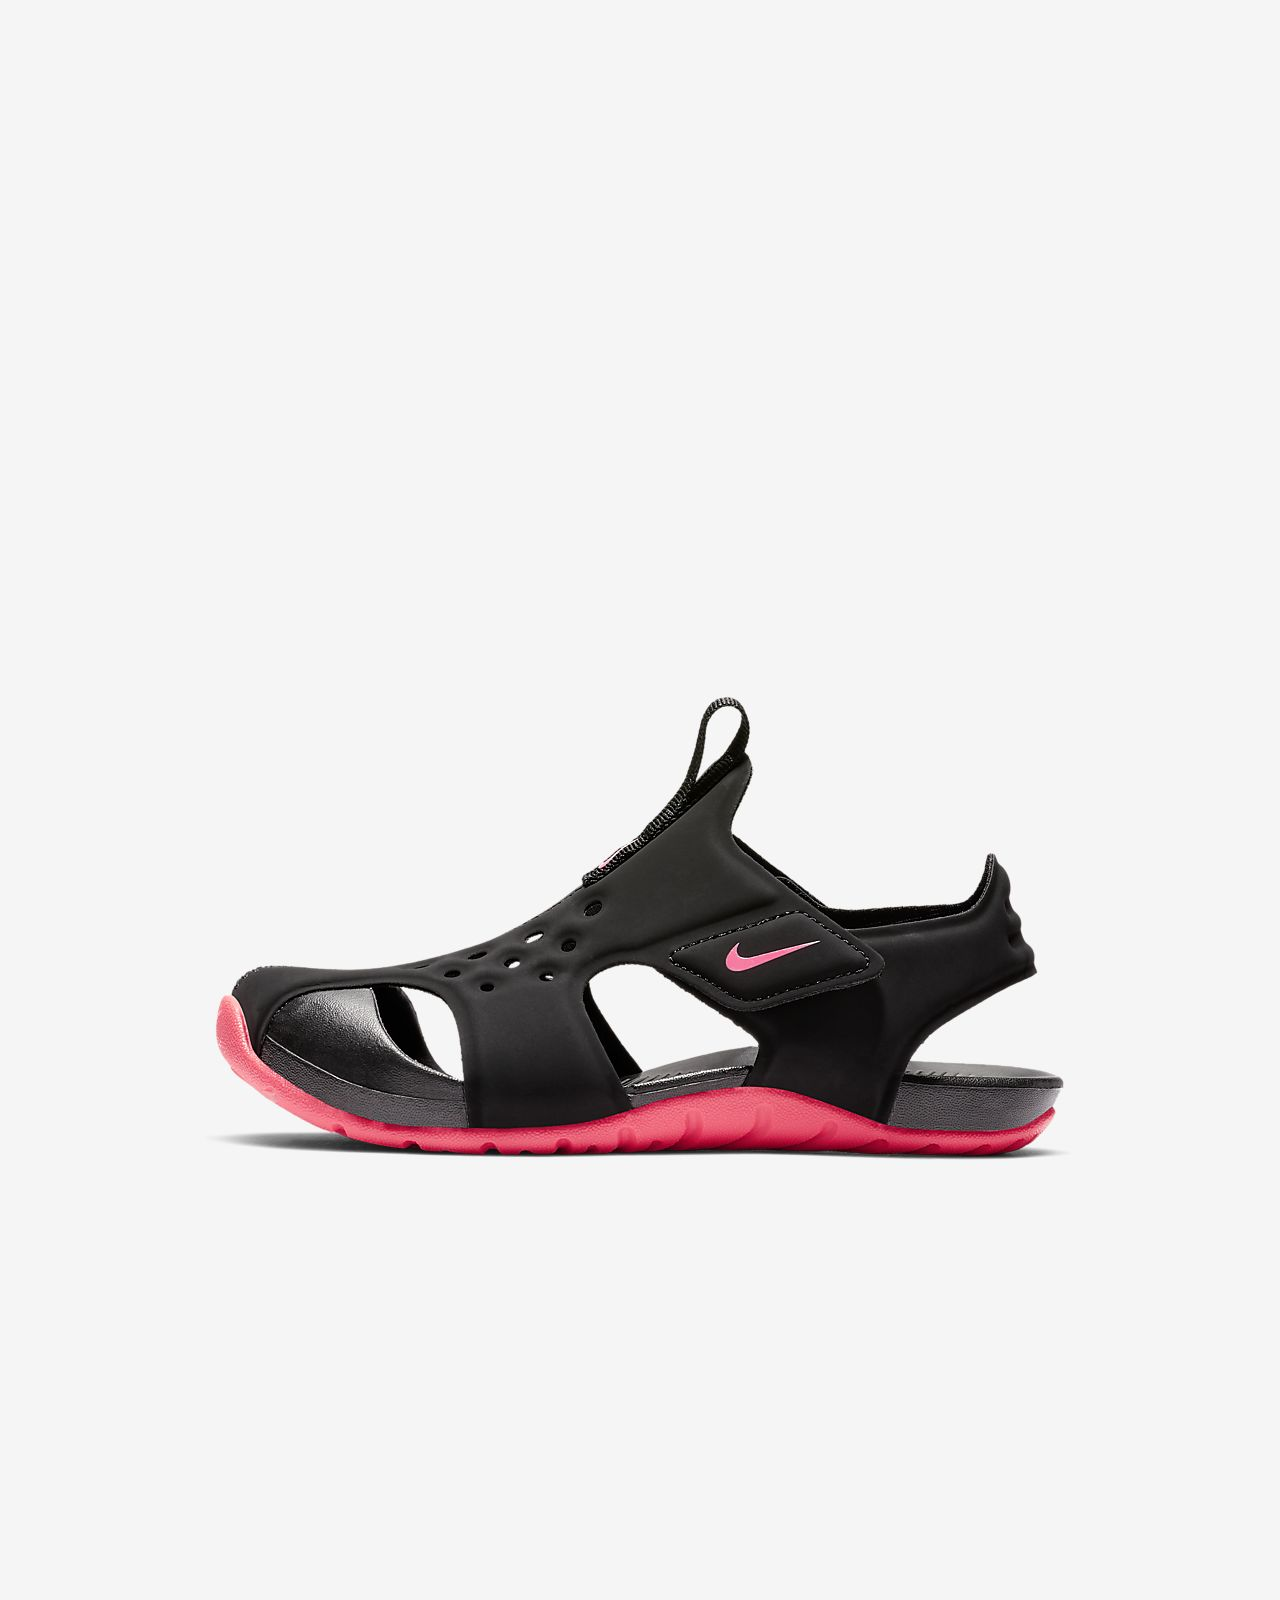 Nike Sunray Protect 2 Little Kids' Sandal